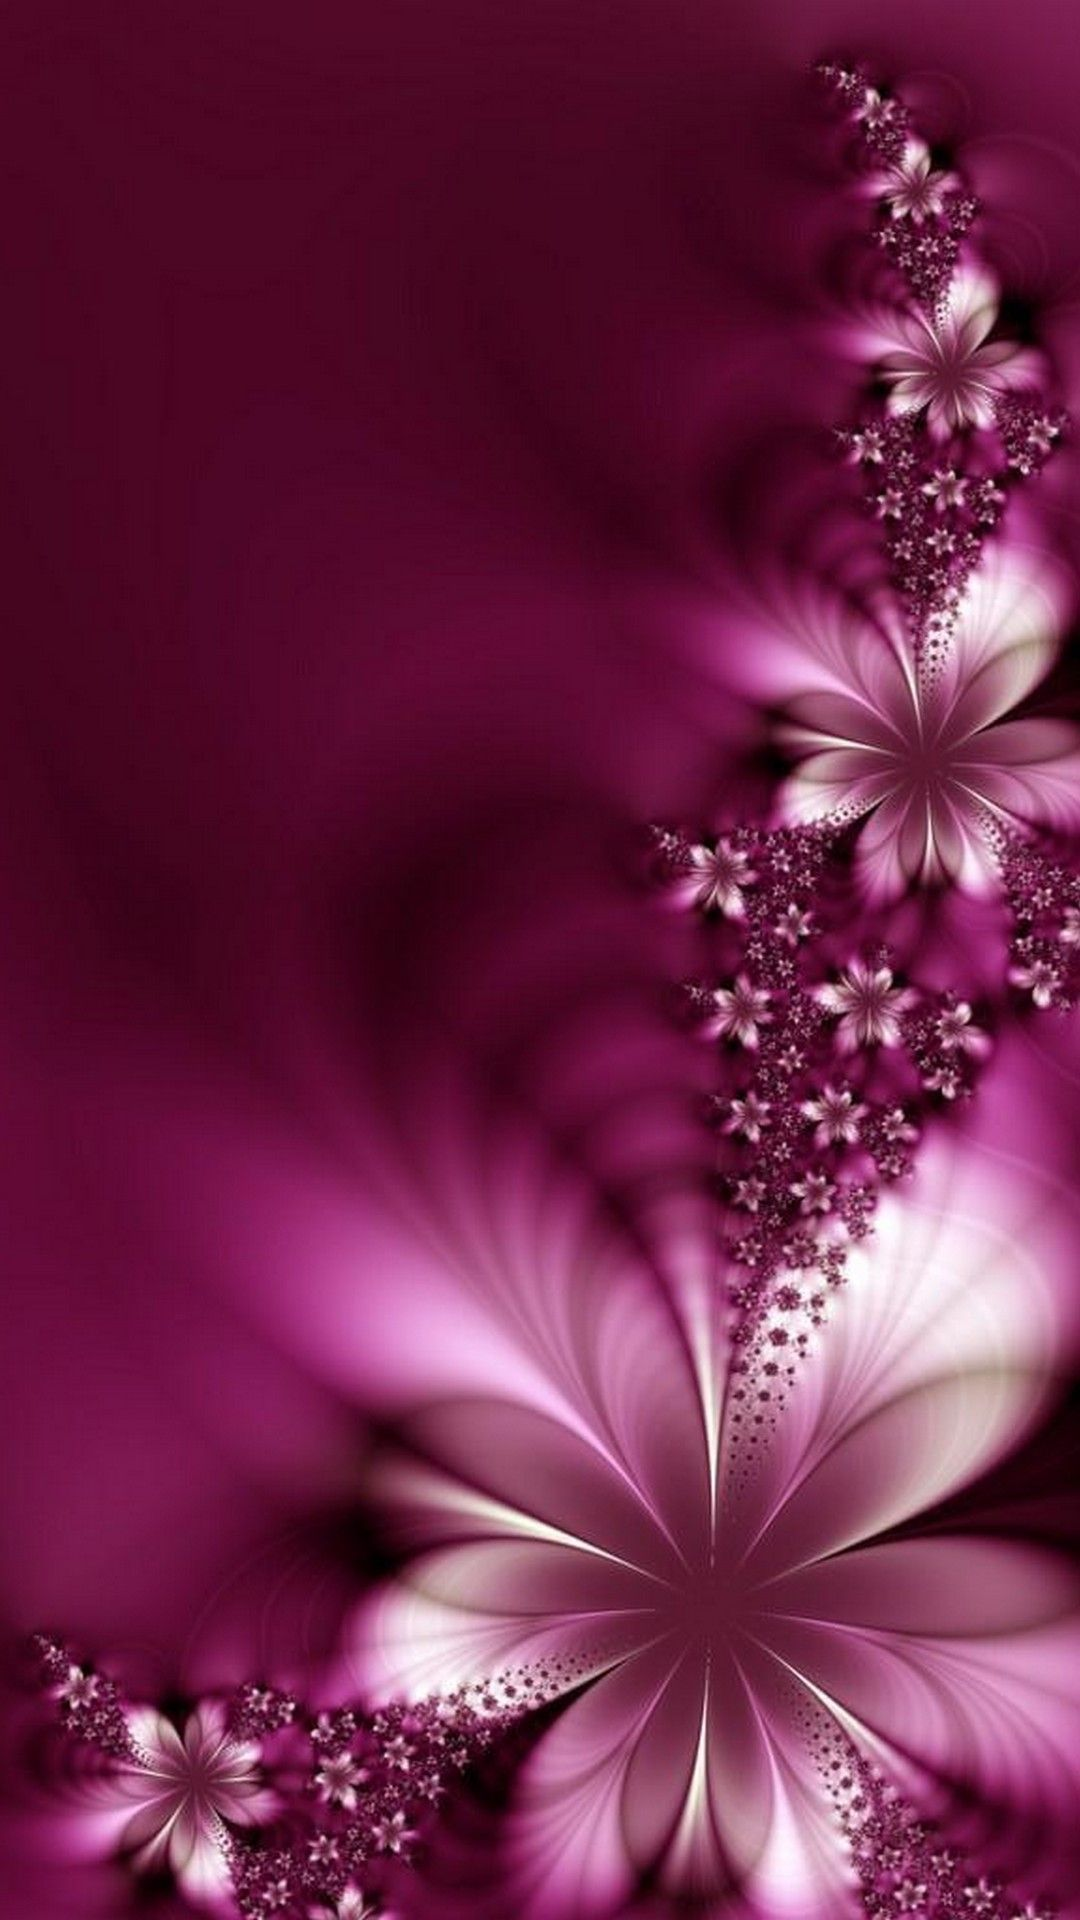 3d Flower Nature Hd Wallpaper Android in 2020 (With images ...